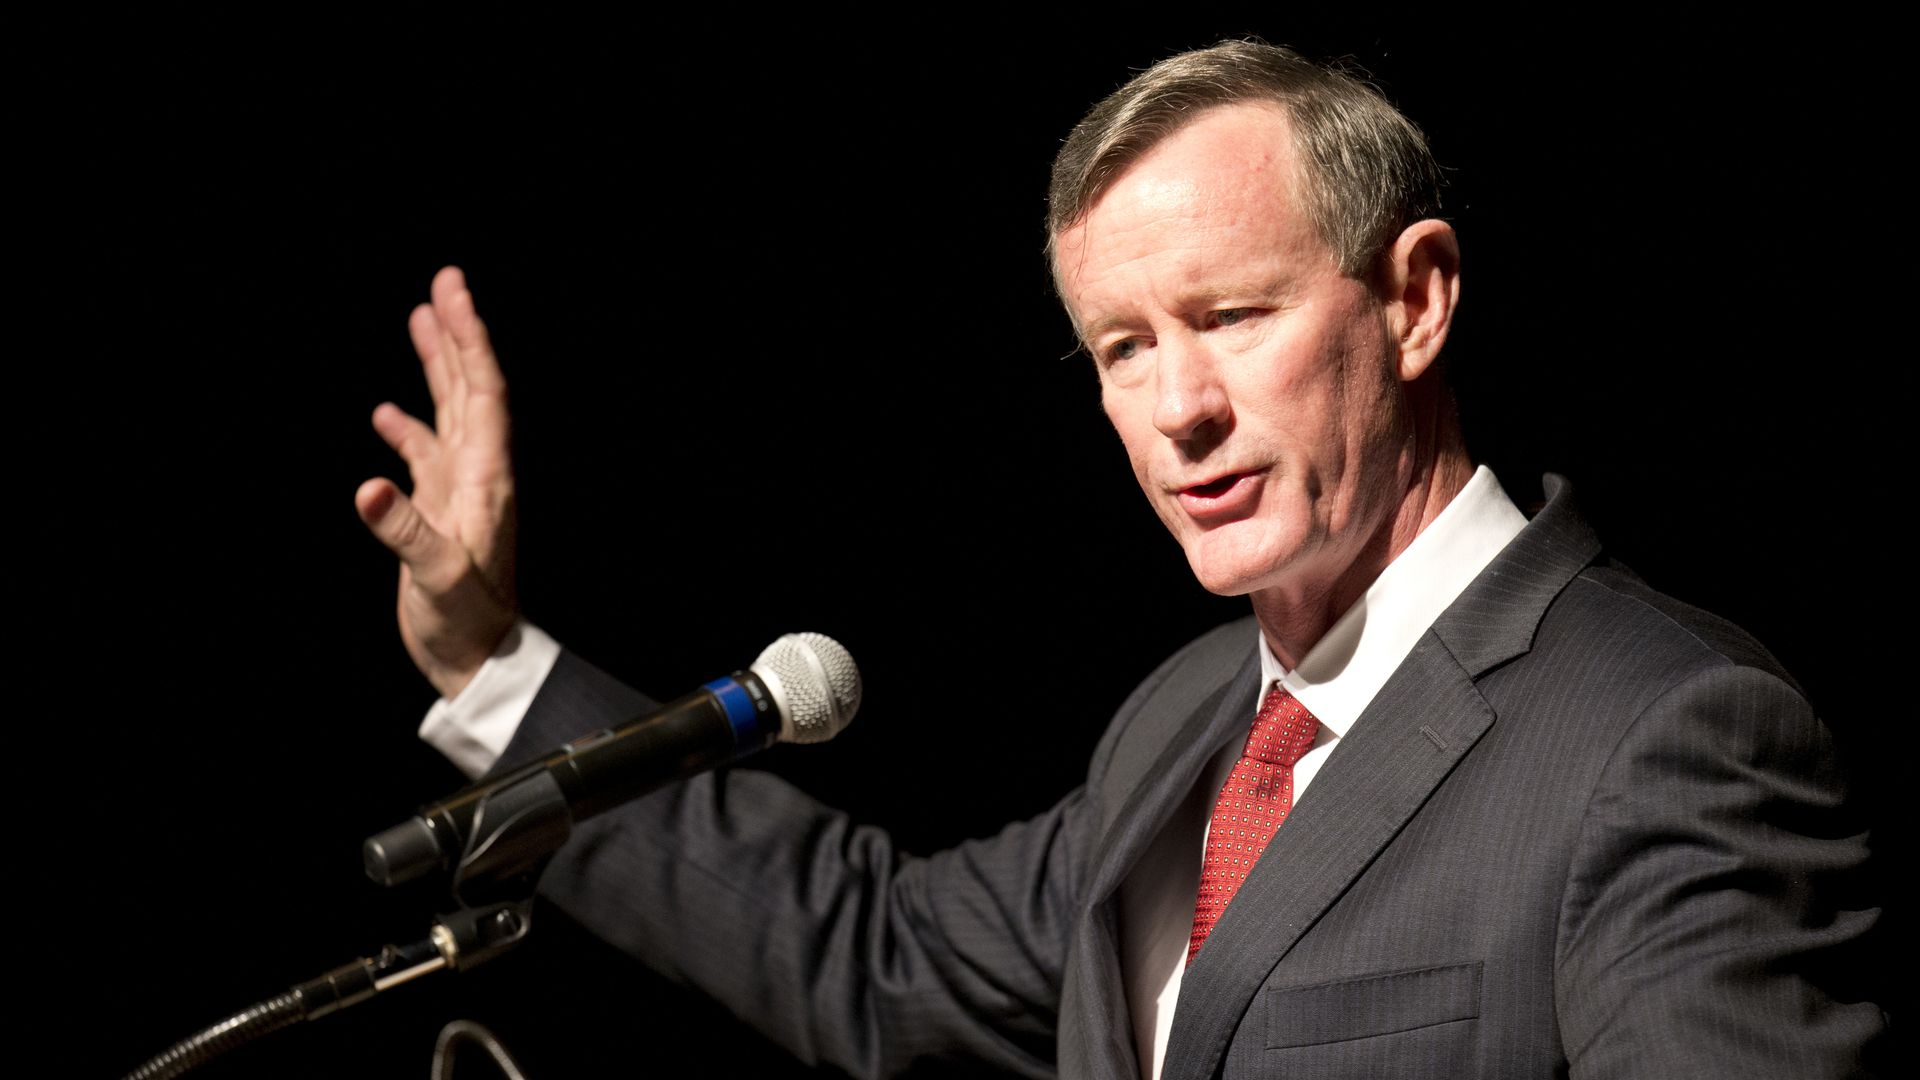 McRaven speaks at podium waving one hand.